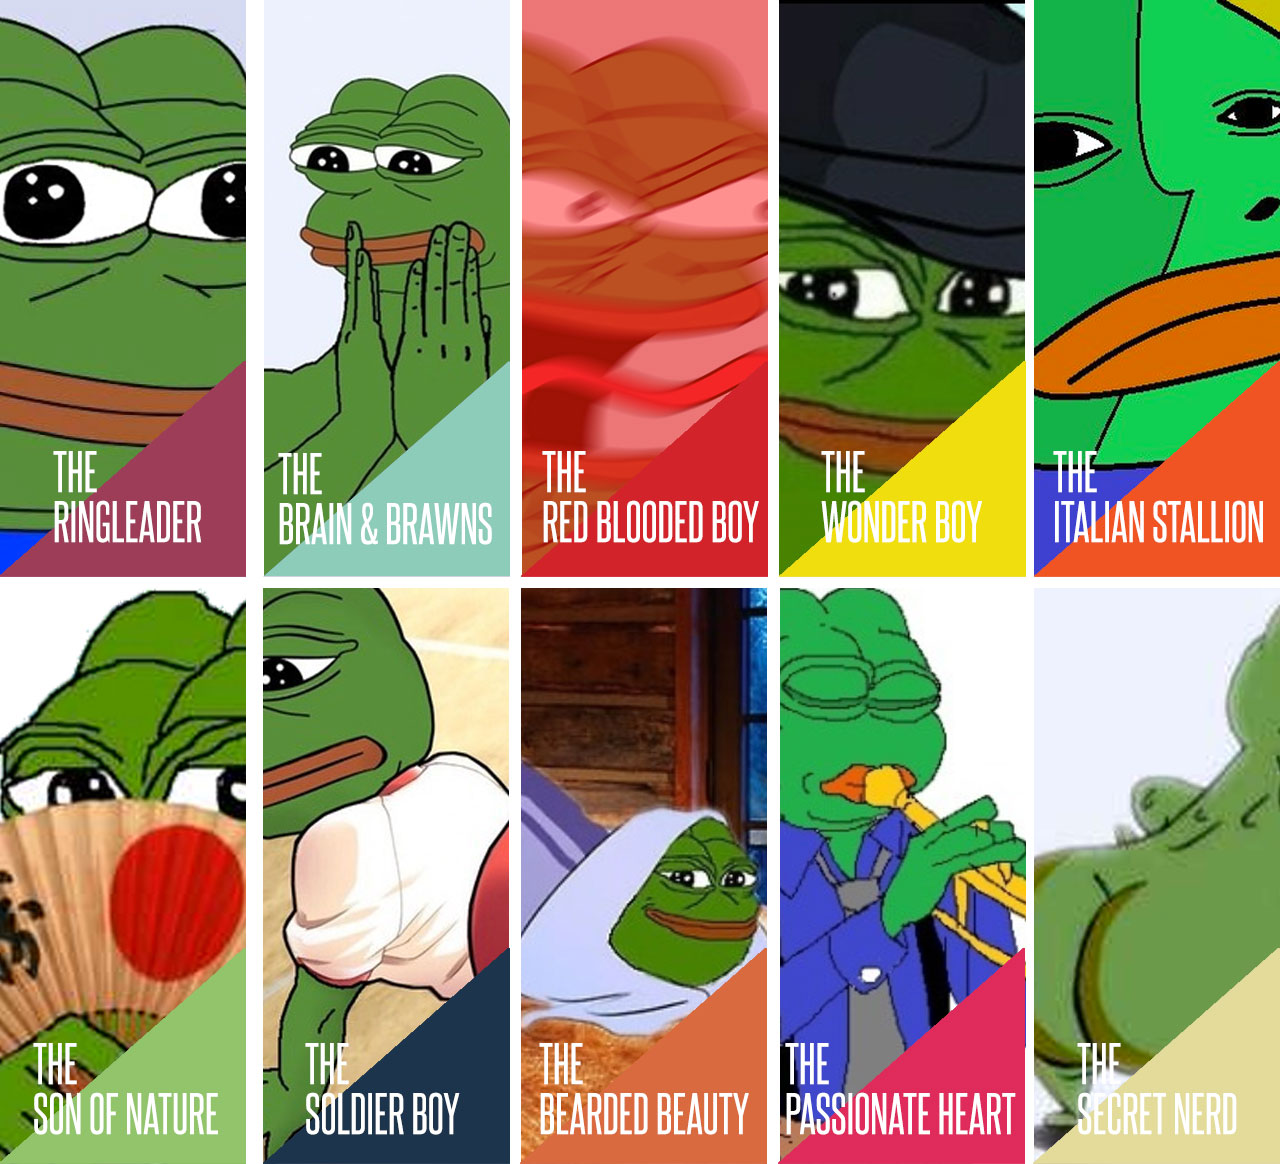 bd3 different types of pepe pepe the frog know your meme